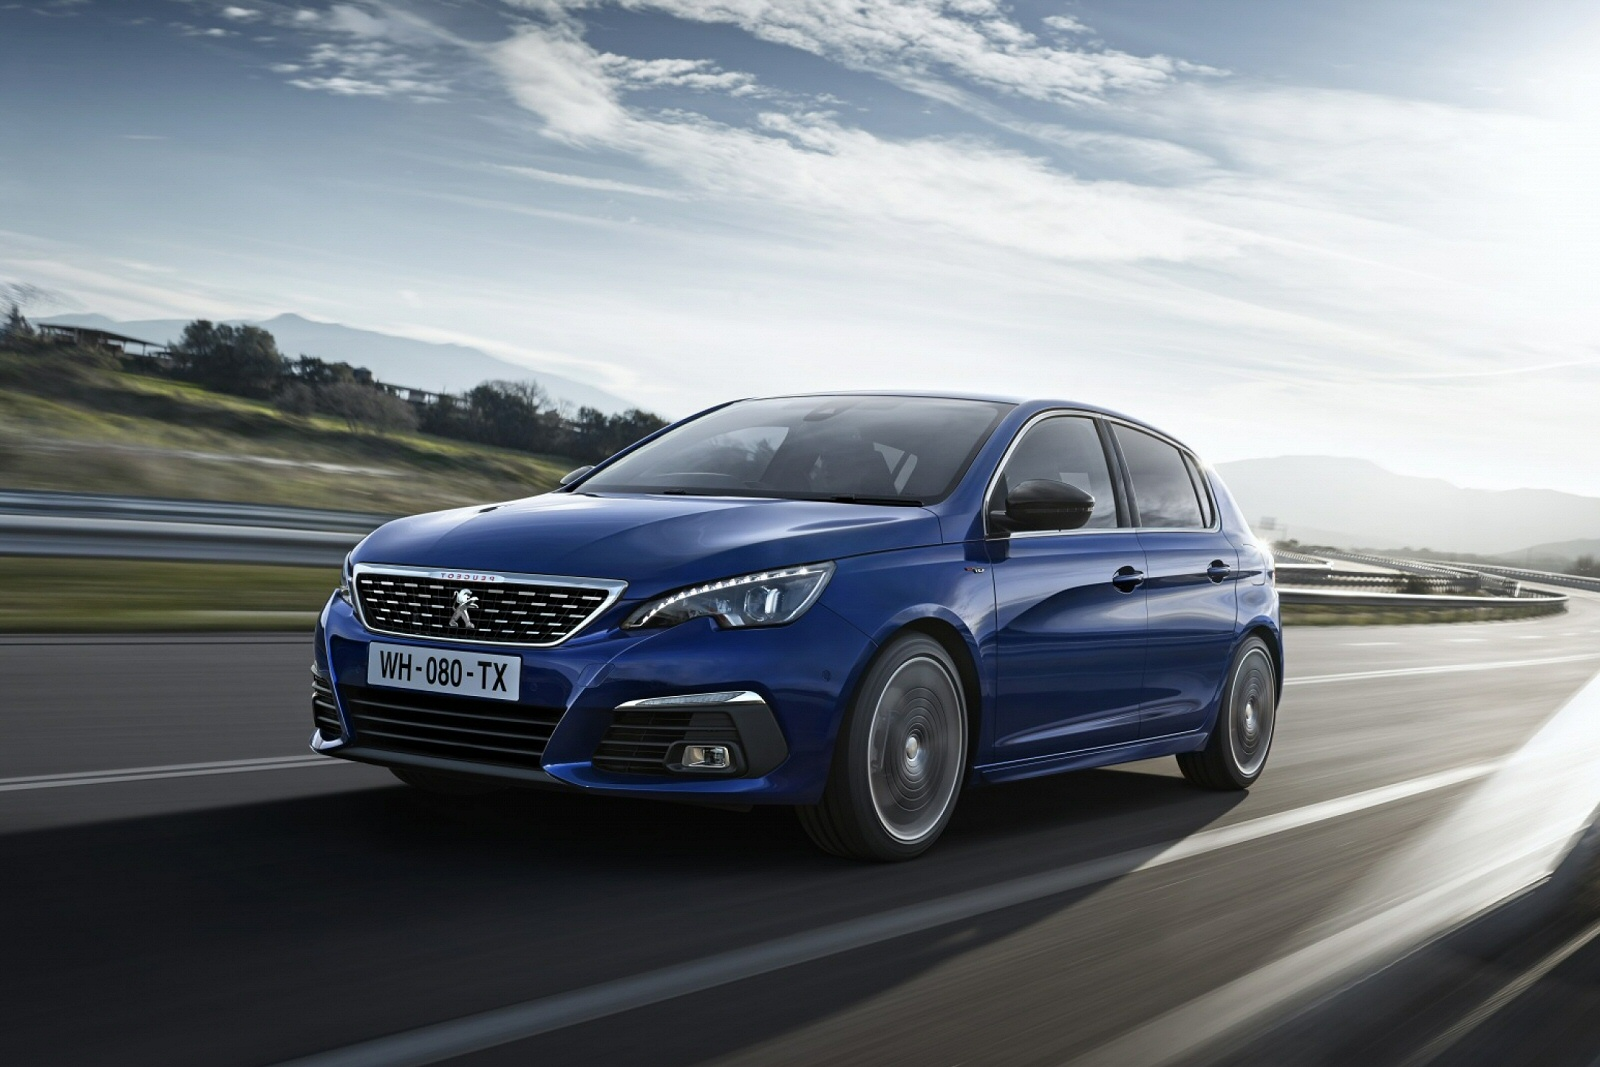 new peugeot 308 1 5 bluehdi 130 gt line 5dr eat8 diesel hatchback for sale bristol street. Black Bedroom Furniture Sets. Home Design Ideas